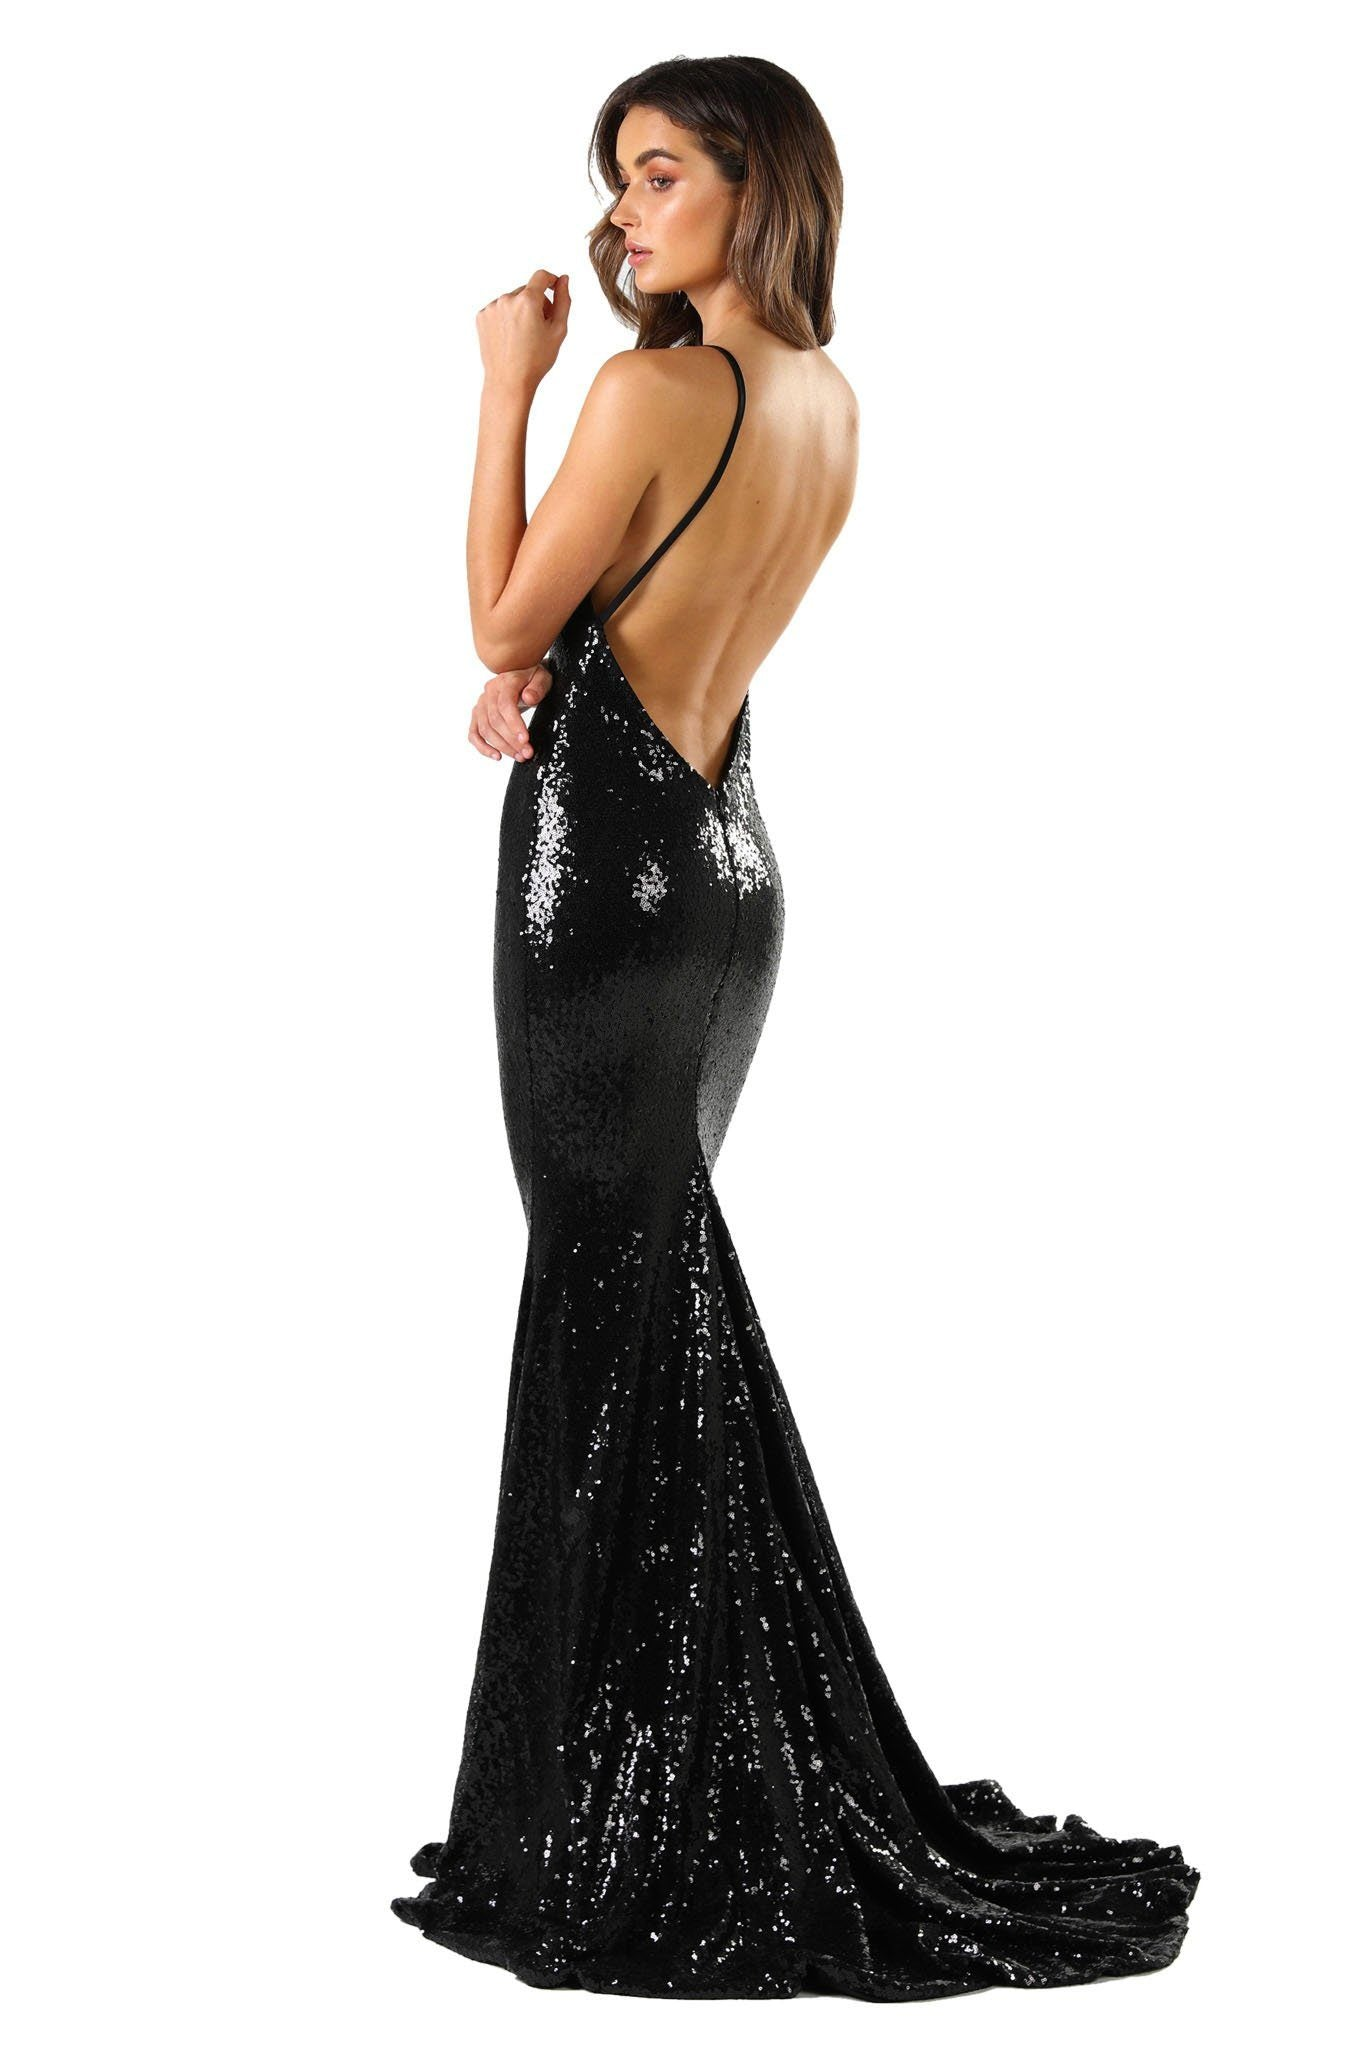 Black Sequin Formal Prom Sleeveless Gown featuring Deep V Neck, V Shaped Backless Design, Thin Shoulder Straps, and Long Train